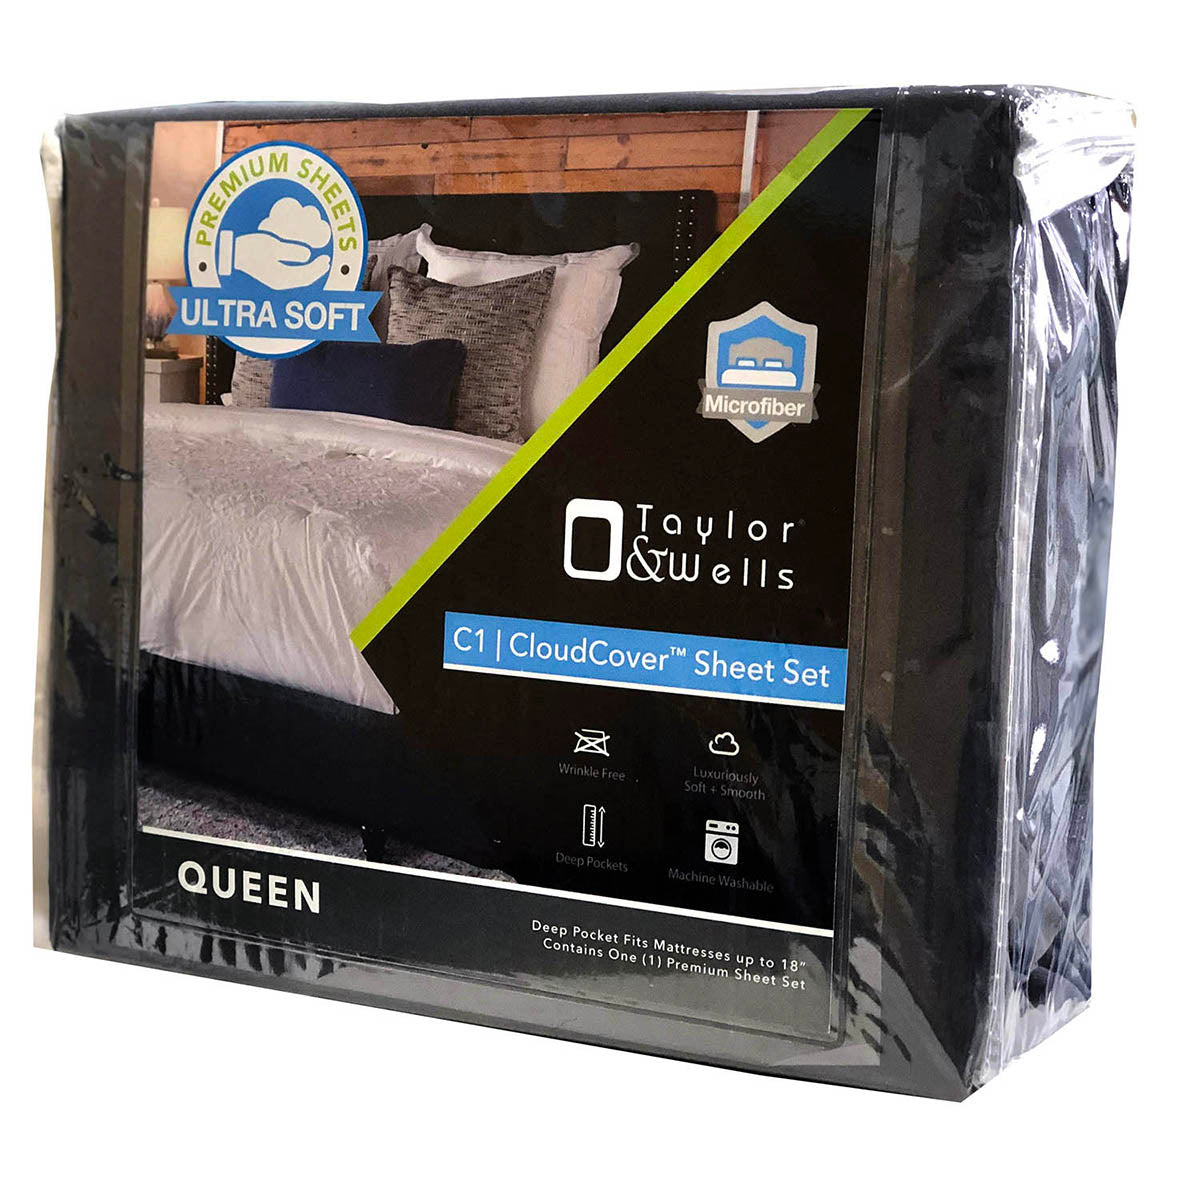 Free Premium Sheet Set With Any Mattress